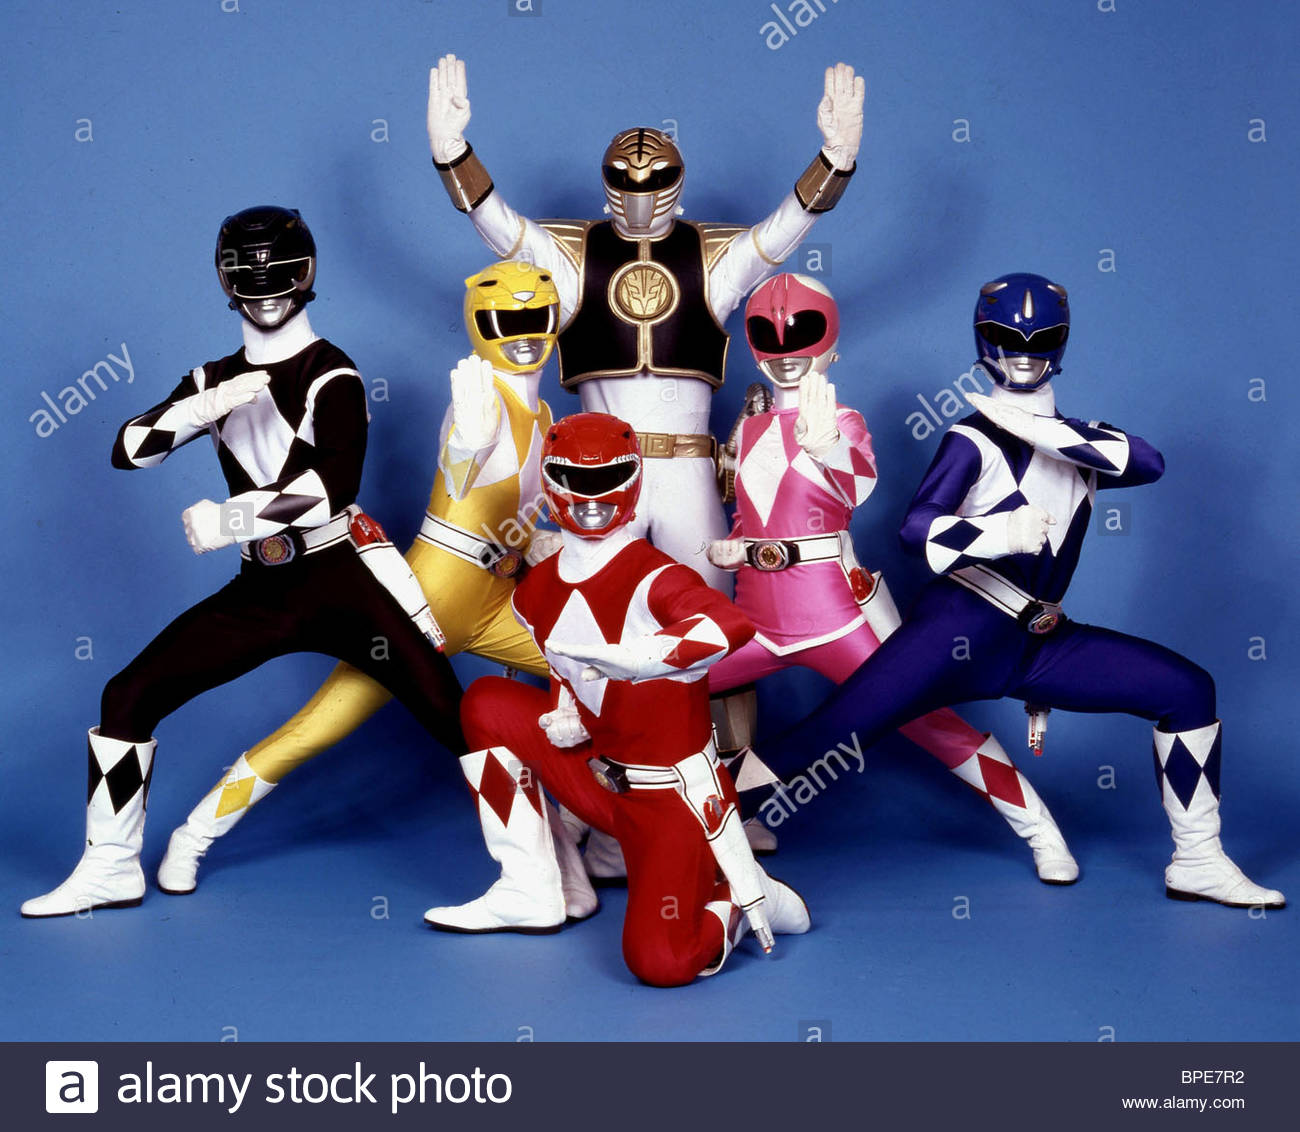 BLACK RANGER, YELLOW RANGER, RED RANGER, WHITE RANGER, PINK RANGER, BLUE RANGER, MIGHTY MORPHIN POWER RANGERS, 1993 - Stock Image